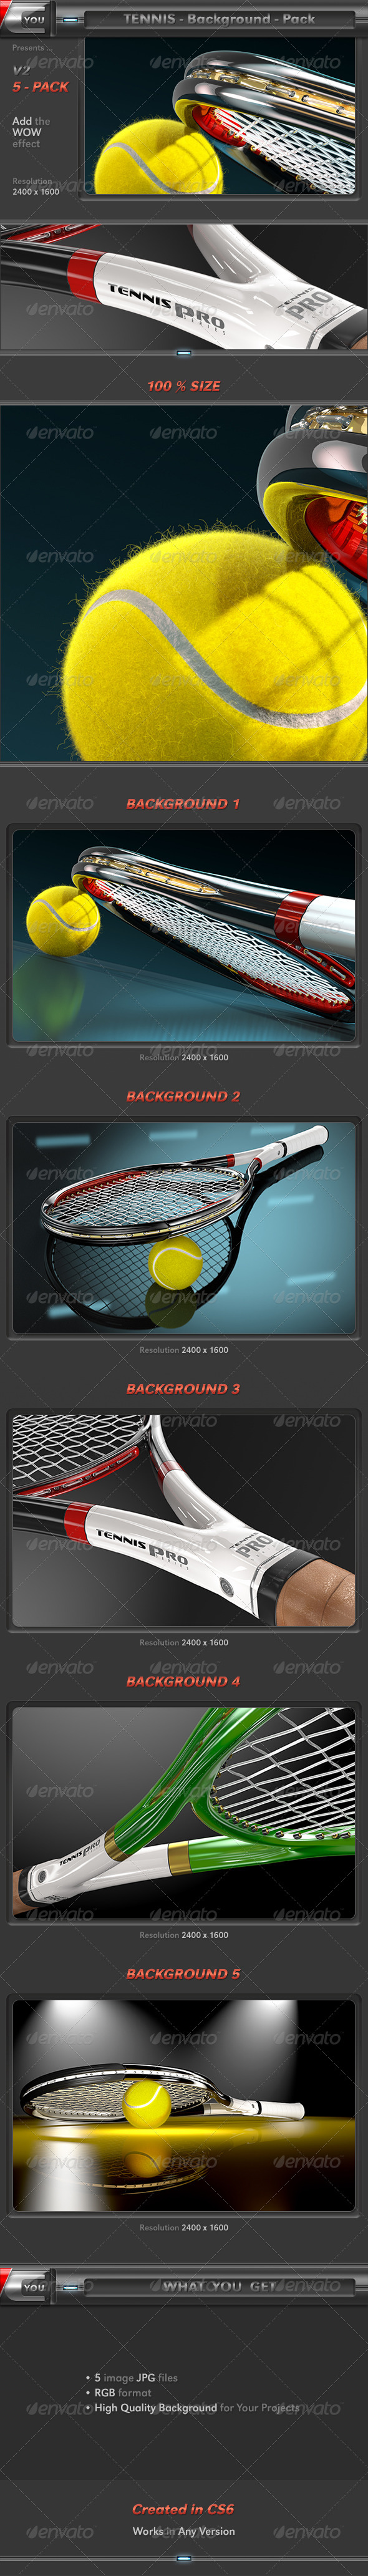 Tennis Background Pack 2